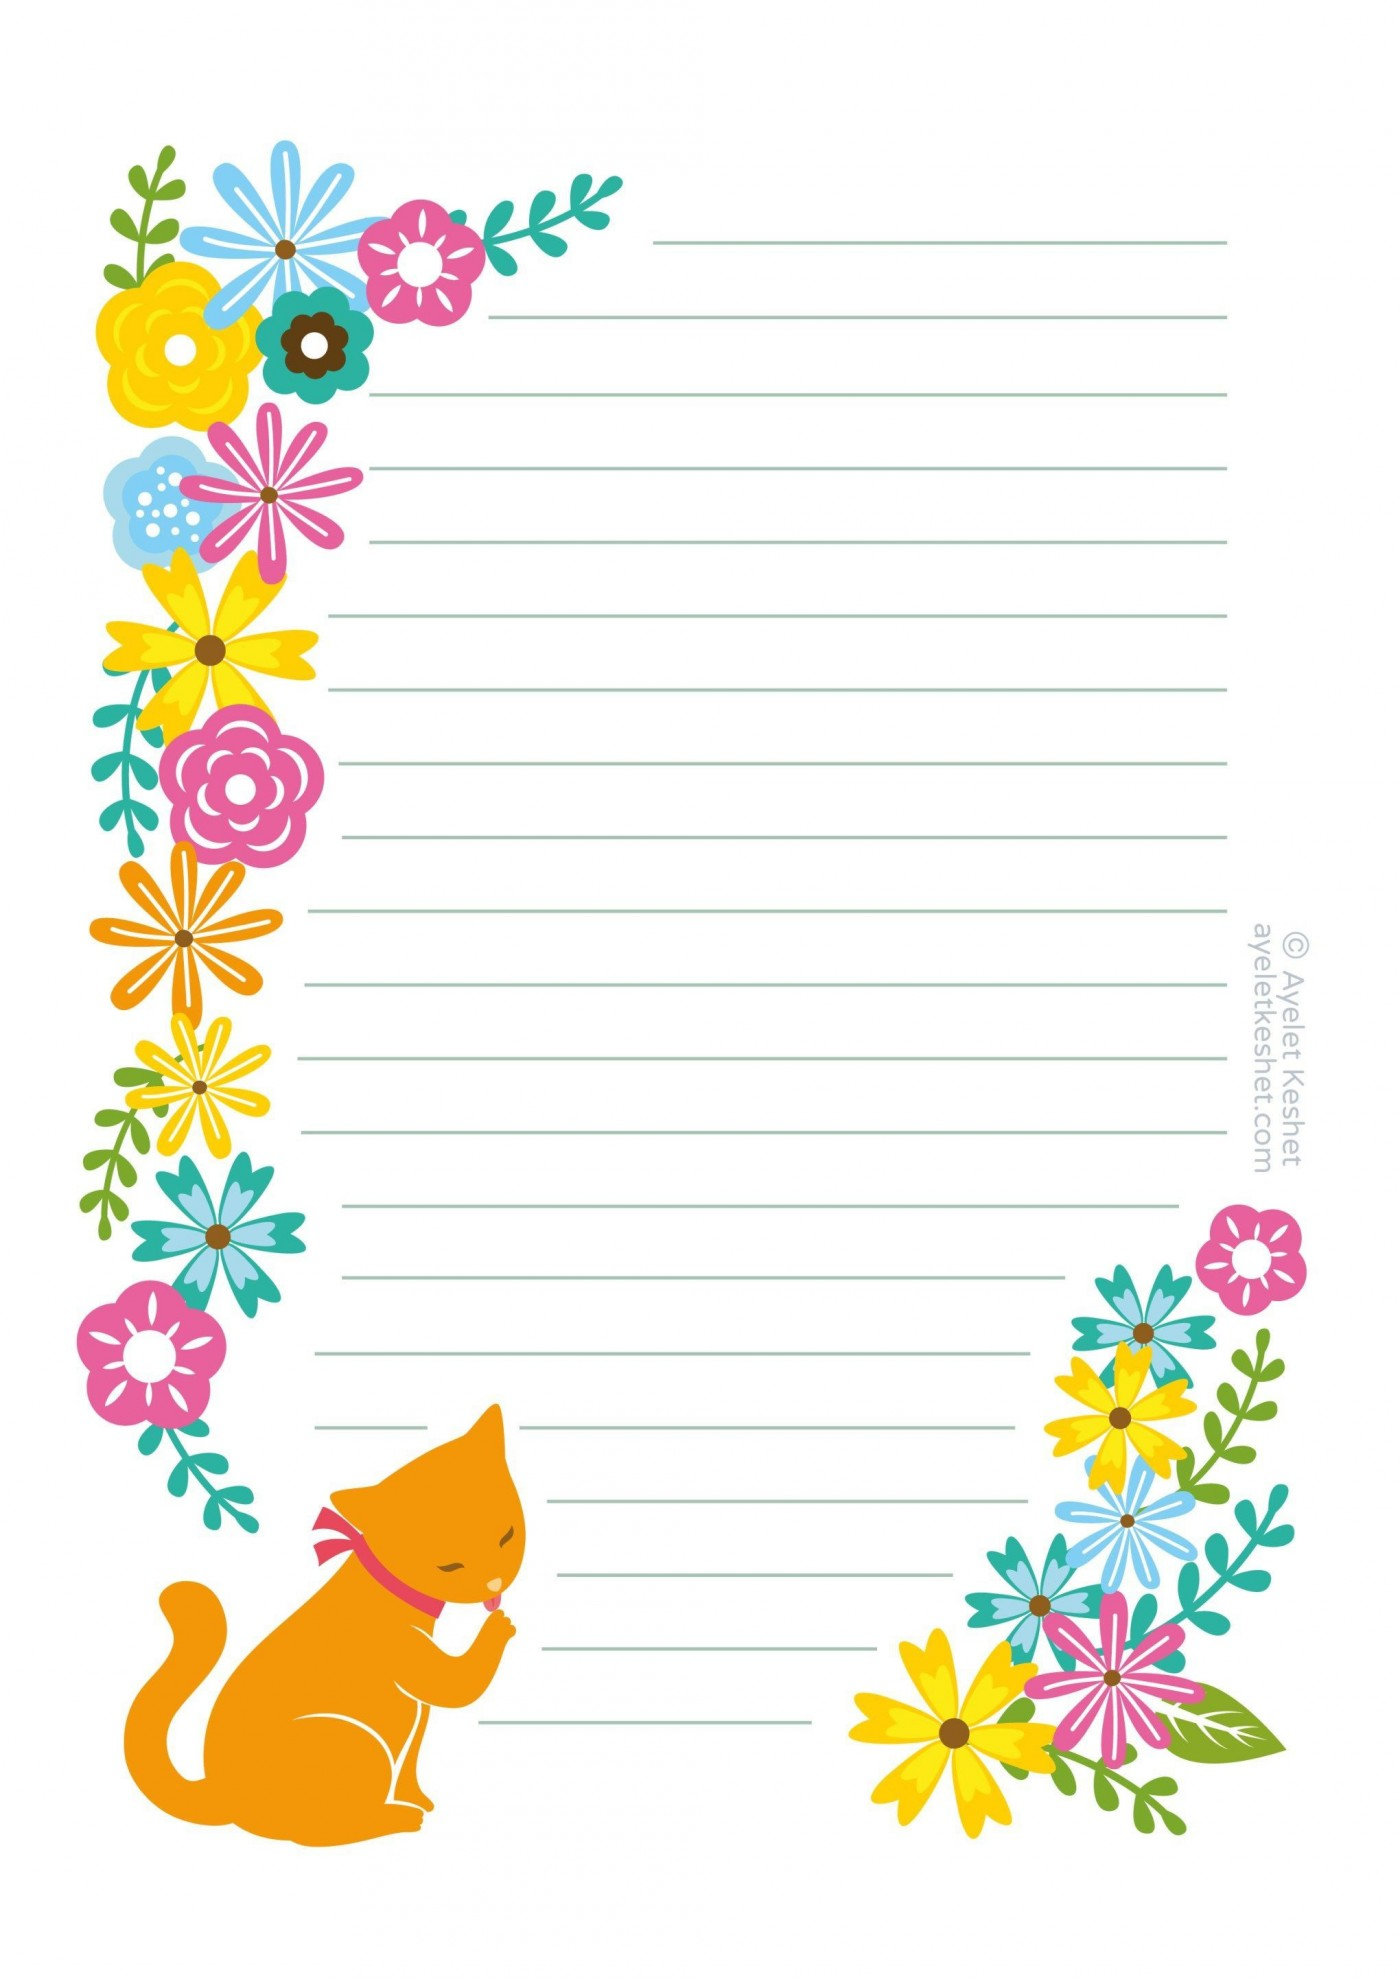 008 Unique Free Printable Stationery Paper Template Highest Clarity 1400